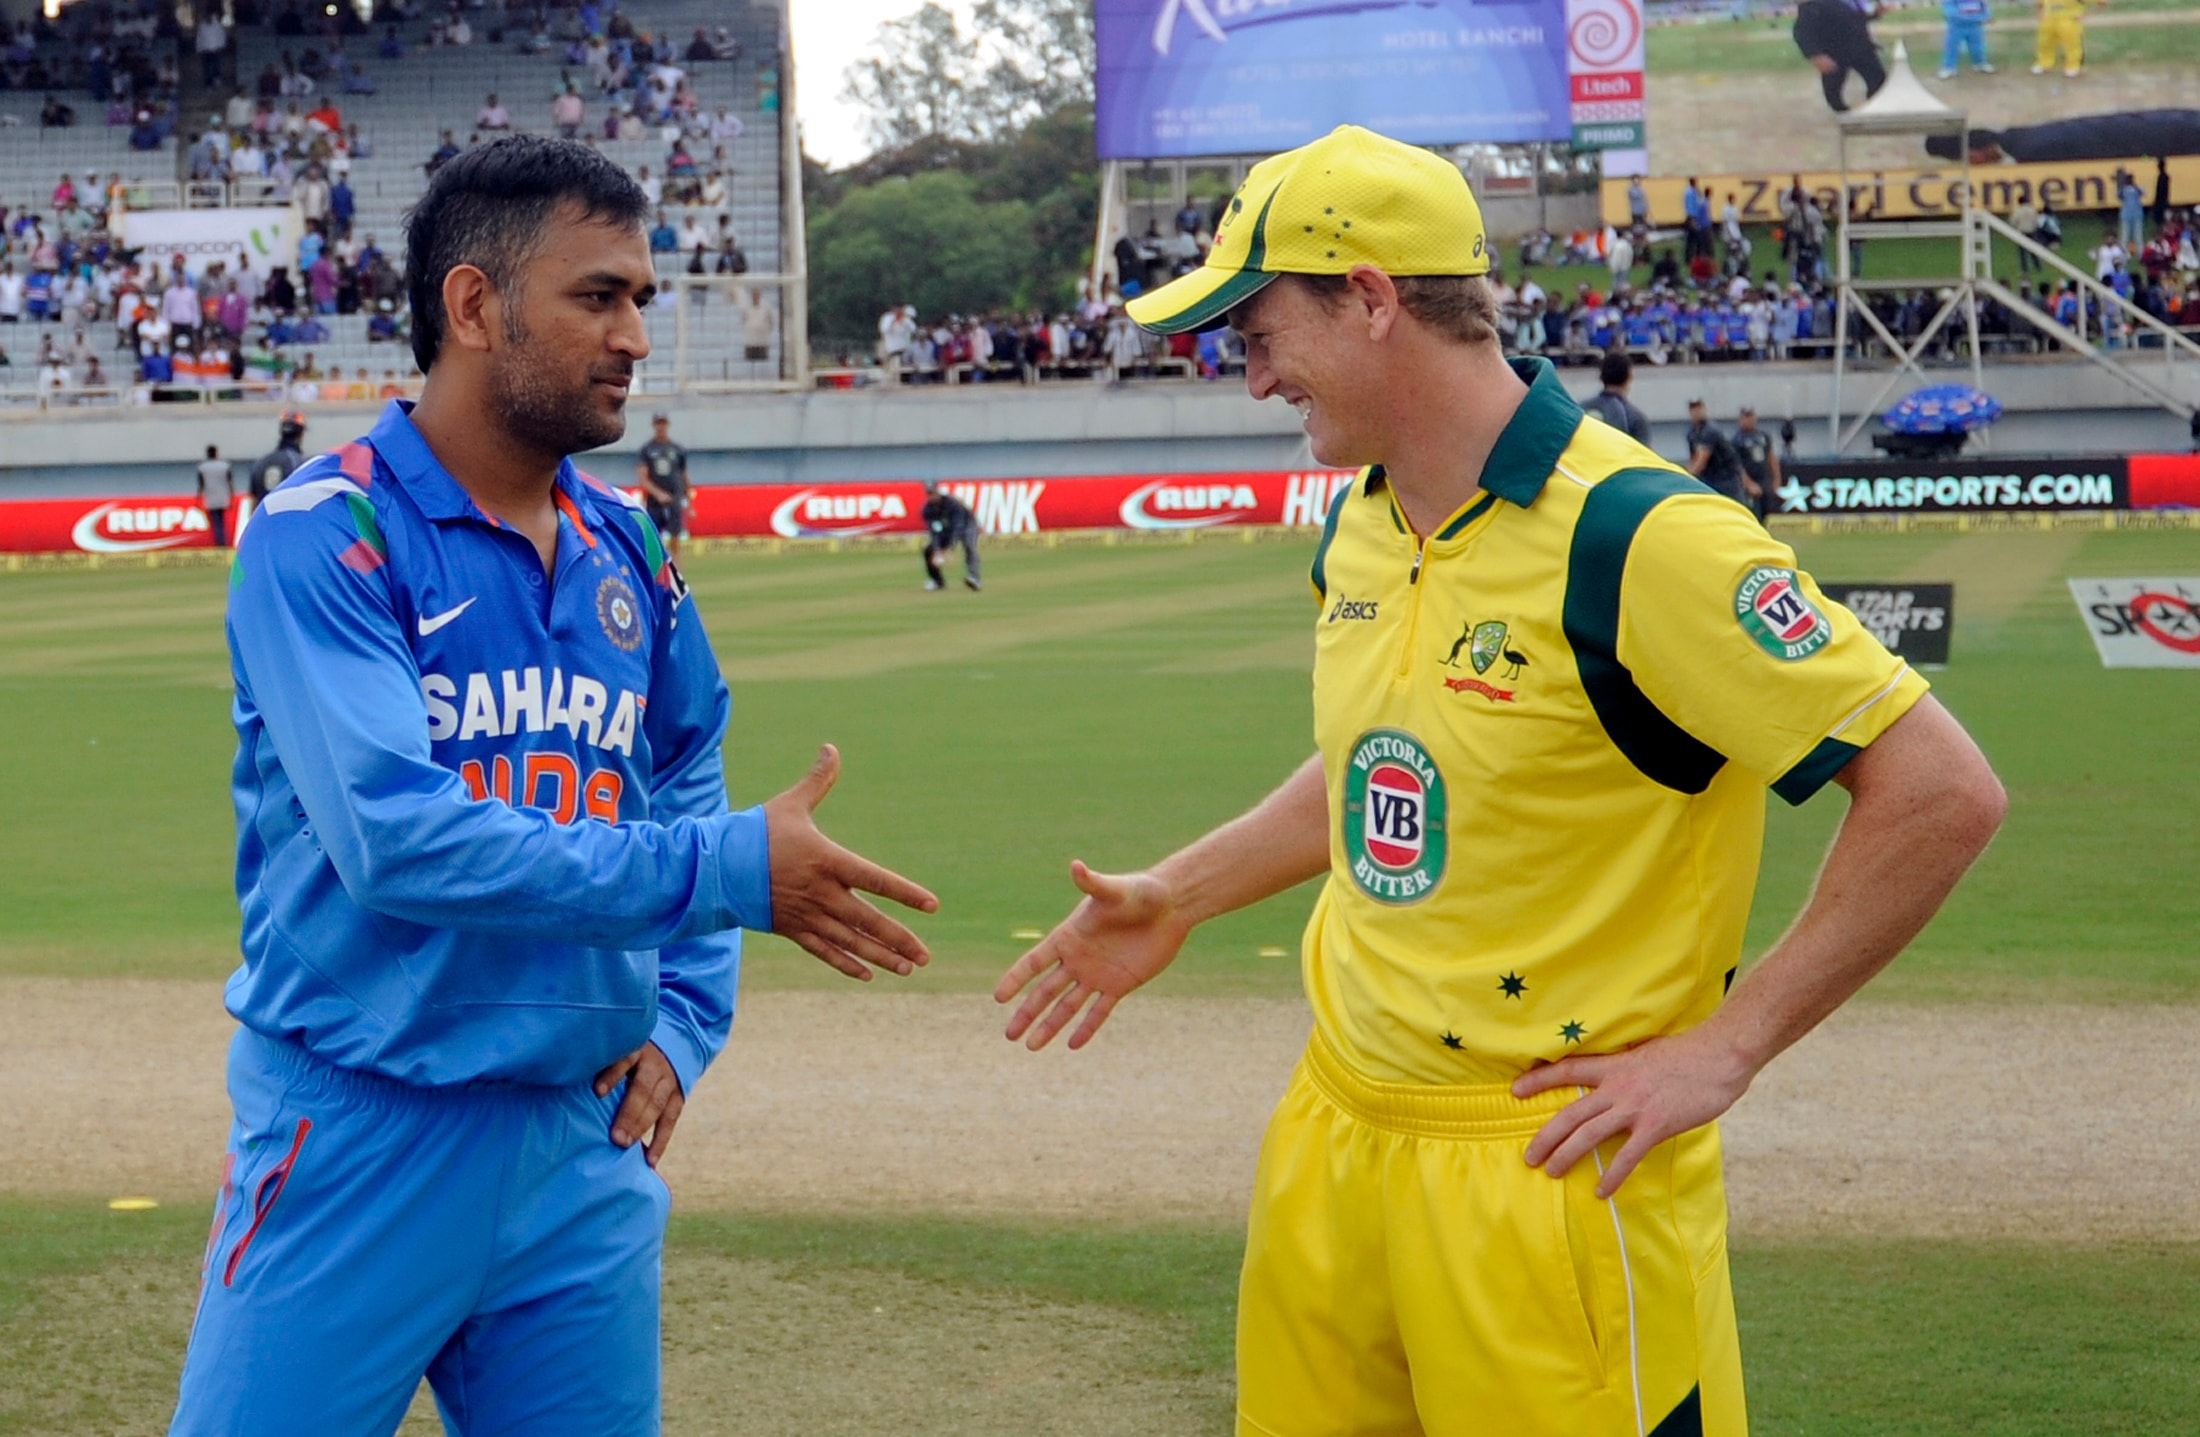 It promised to be a thrilling encounter between India and Australia in MS Dhoni's home town of Ranchi but rain made sure that no result was possible. (BCCI image)